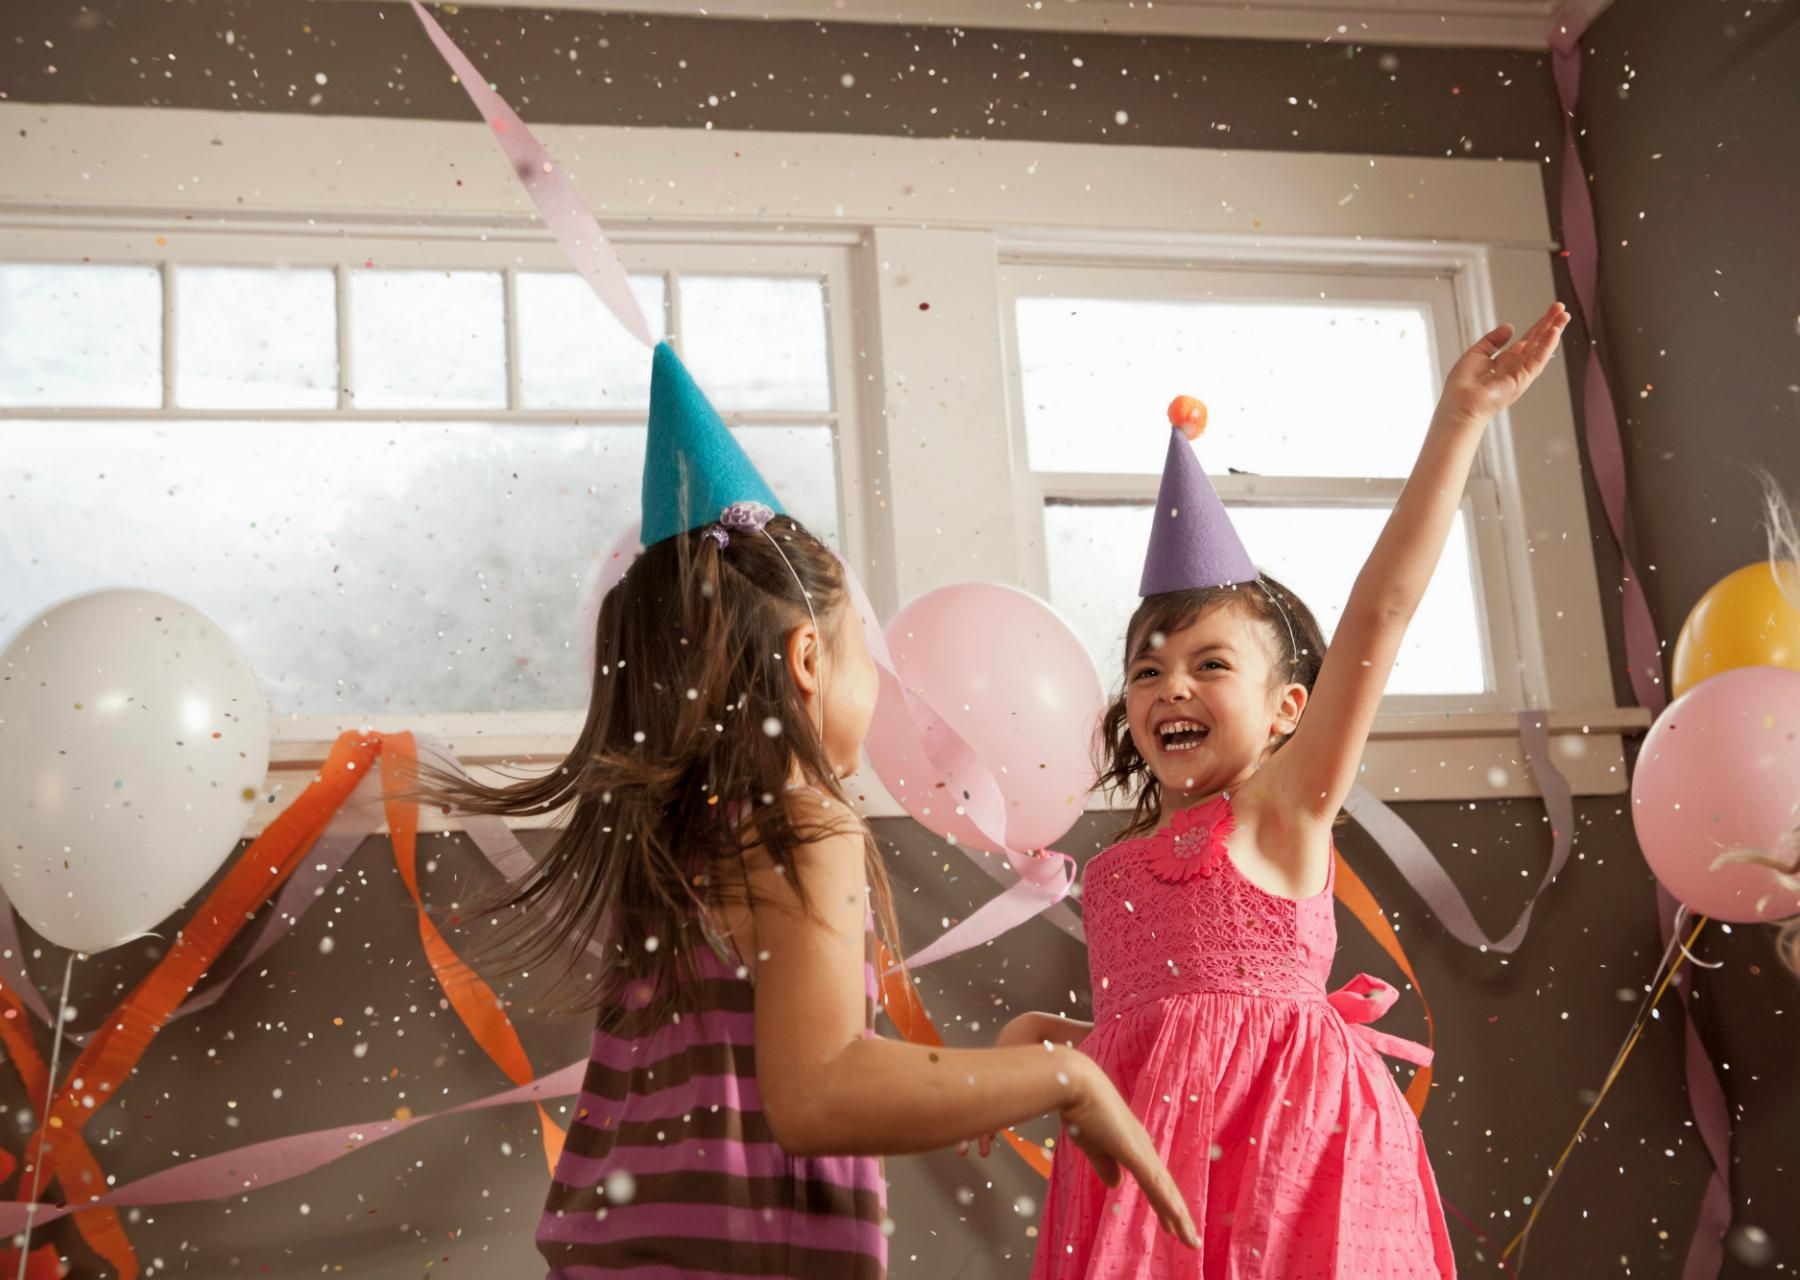 Games To Play At A Dance Party